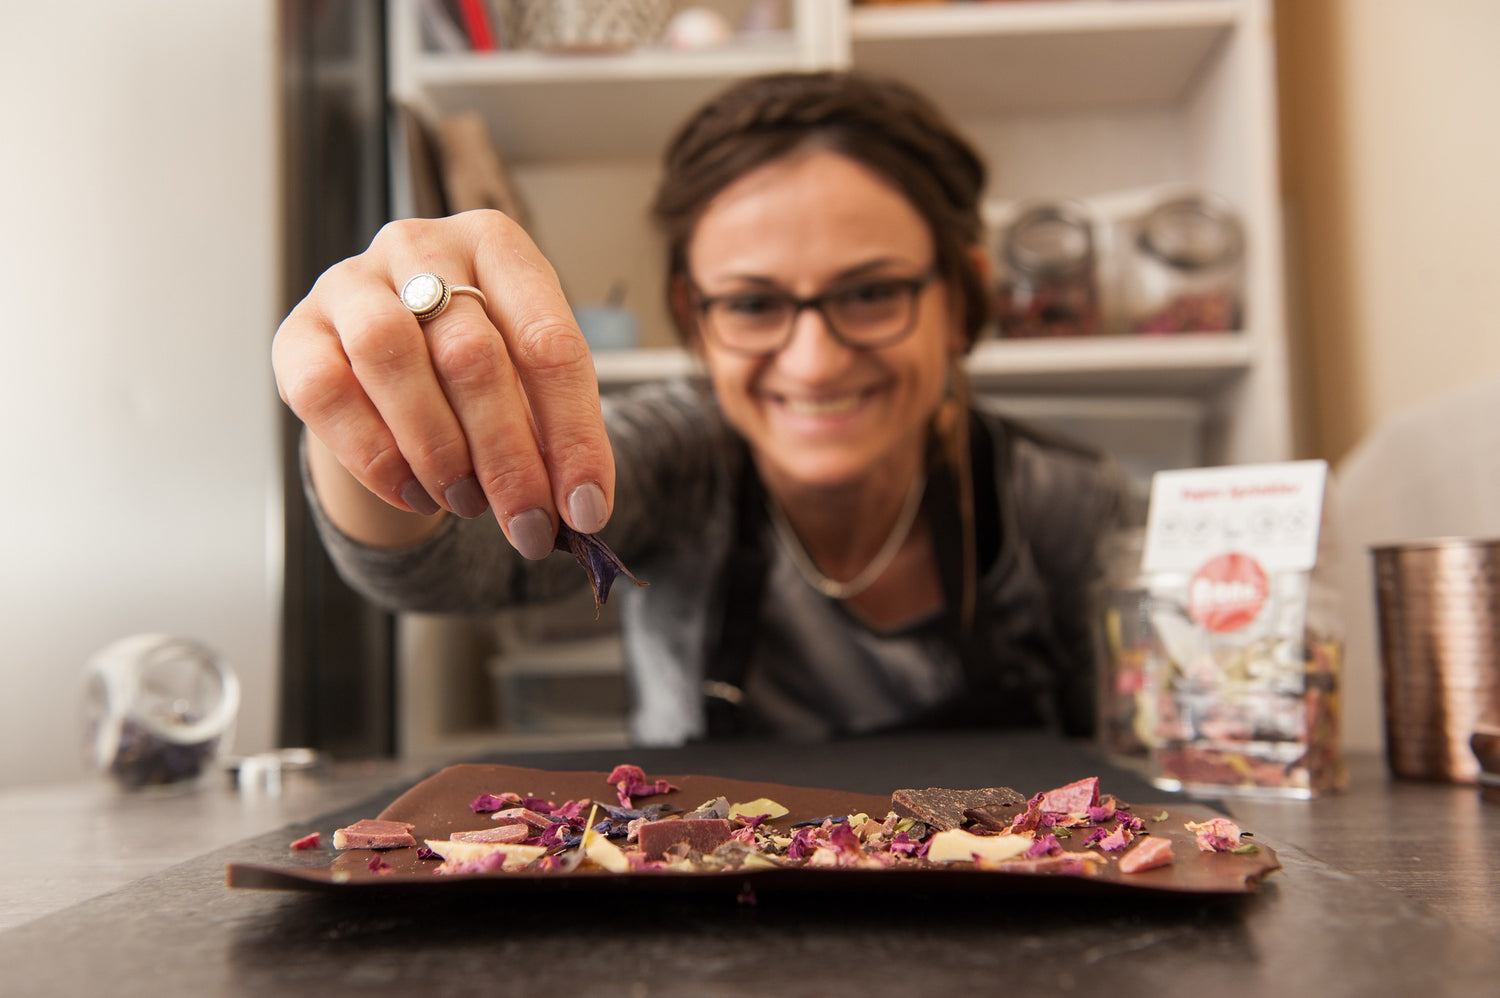 Alessandra Bester in the kitchen baking